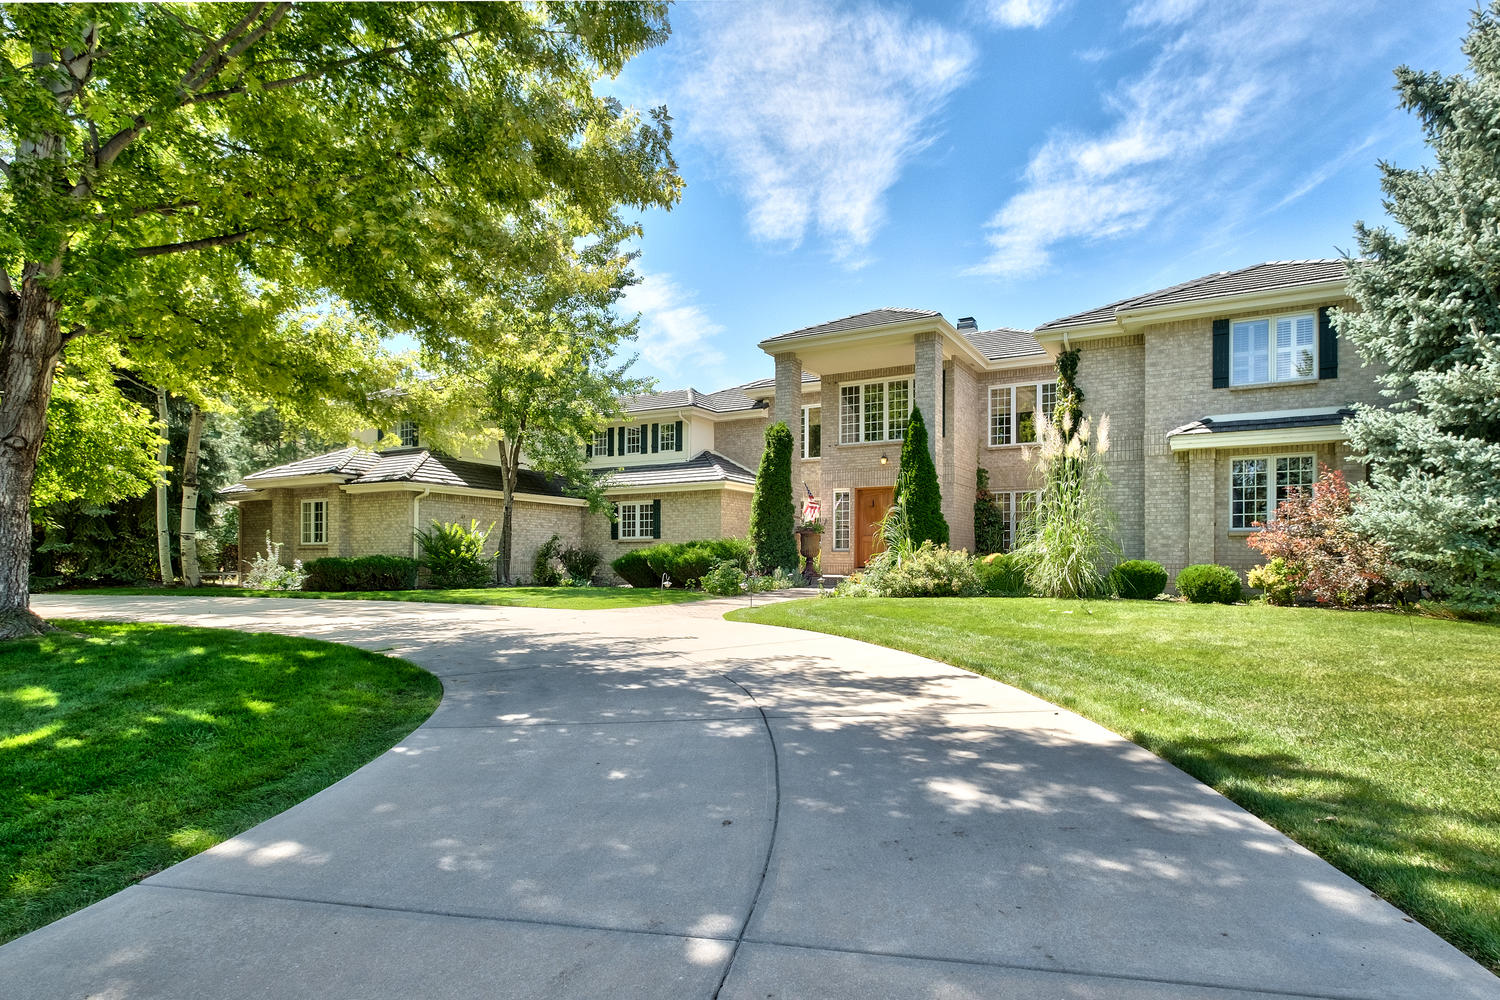 Single Family Home for Sale at 4933 S. Elizabeth Circle Cherry Hills Village, Colorado, 80113 United States